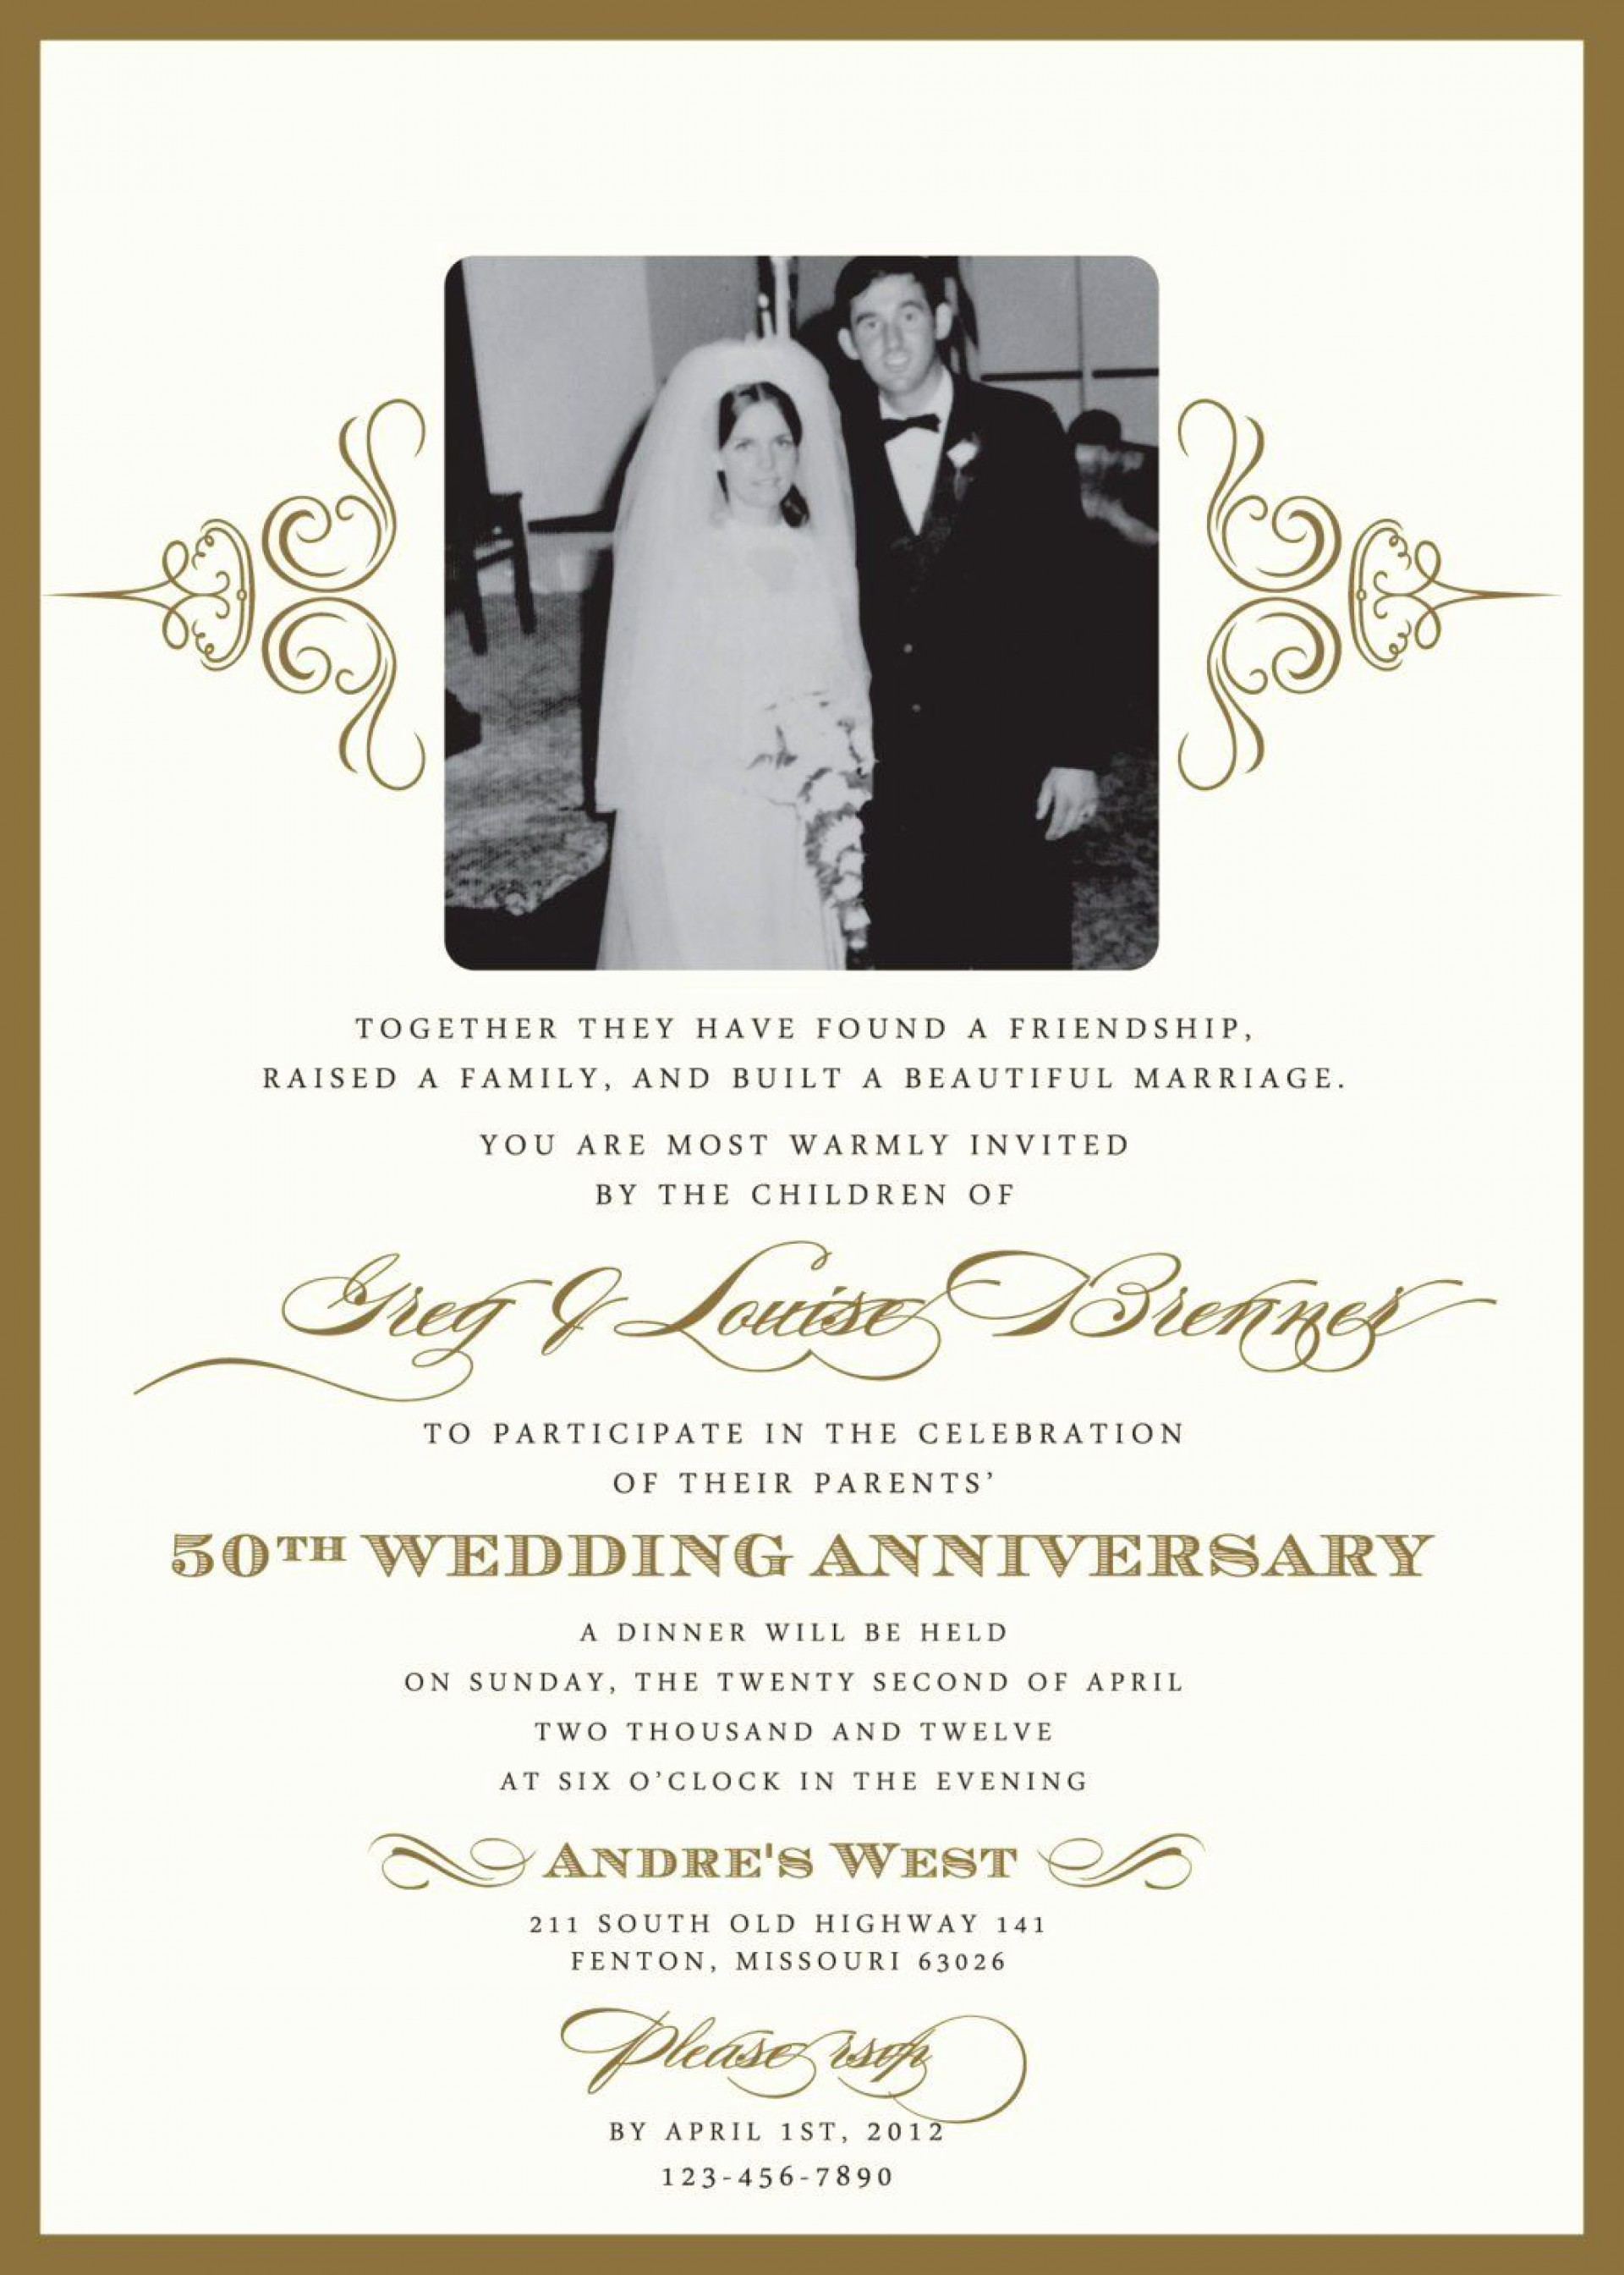 004 Remarkable 50th Anniversary Invitation Template Free Image  Download Golden Wedding1920